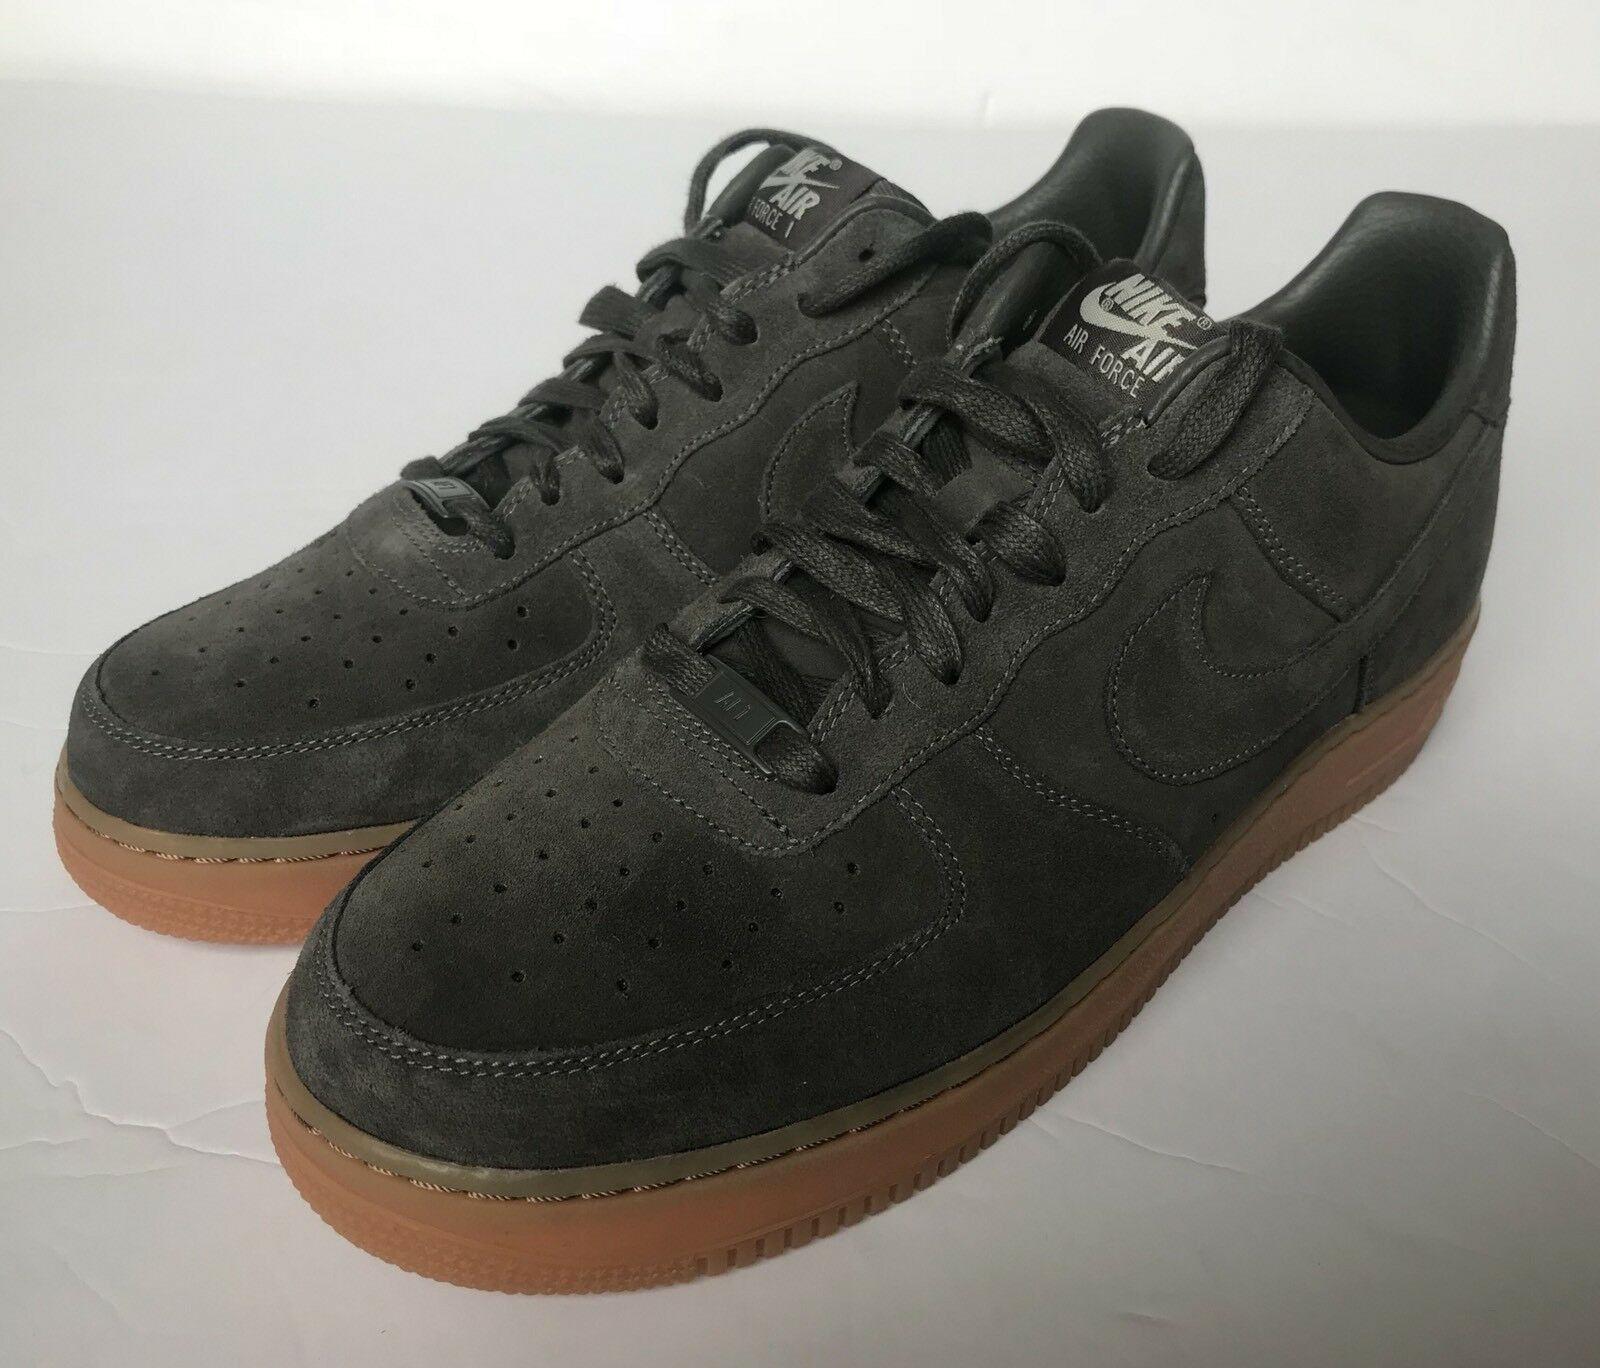 Nike ID Air Force 1 AF1 Suede Charcoal shoes 808791-983 Size 10.5 US